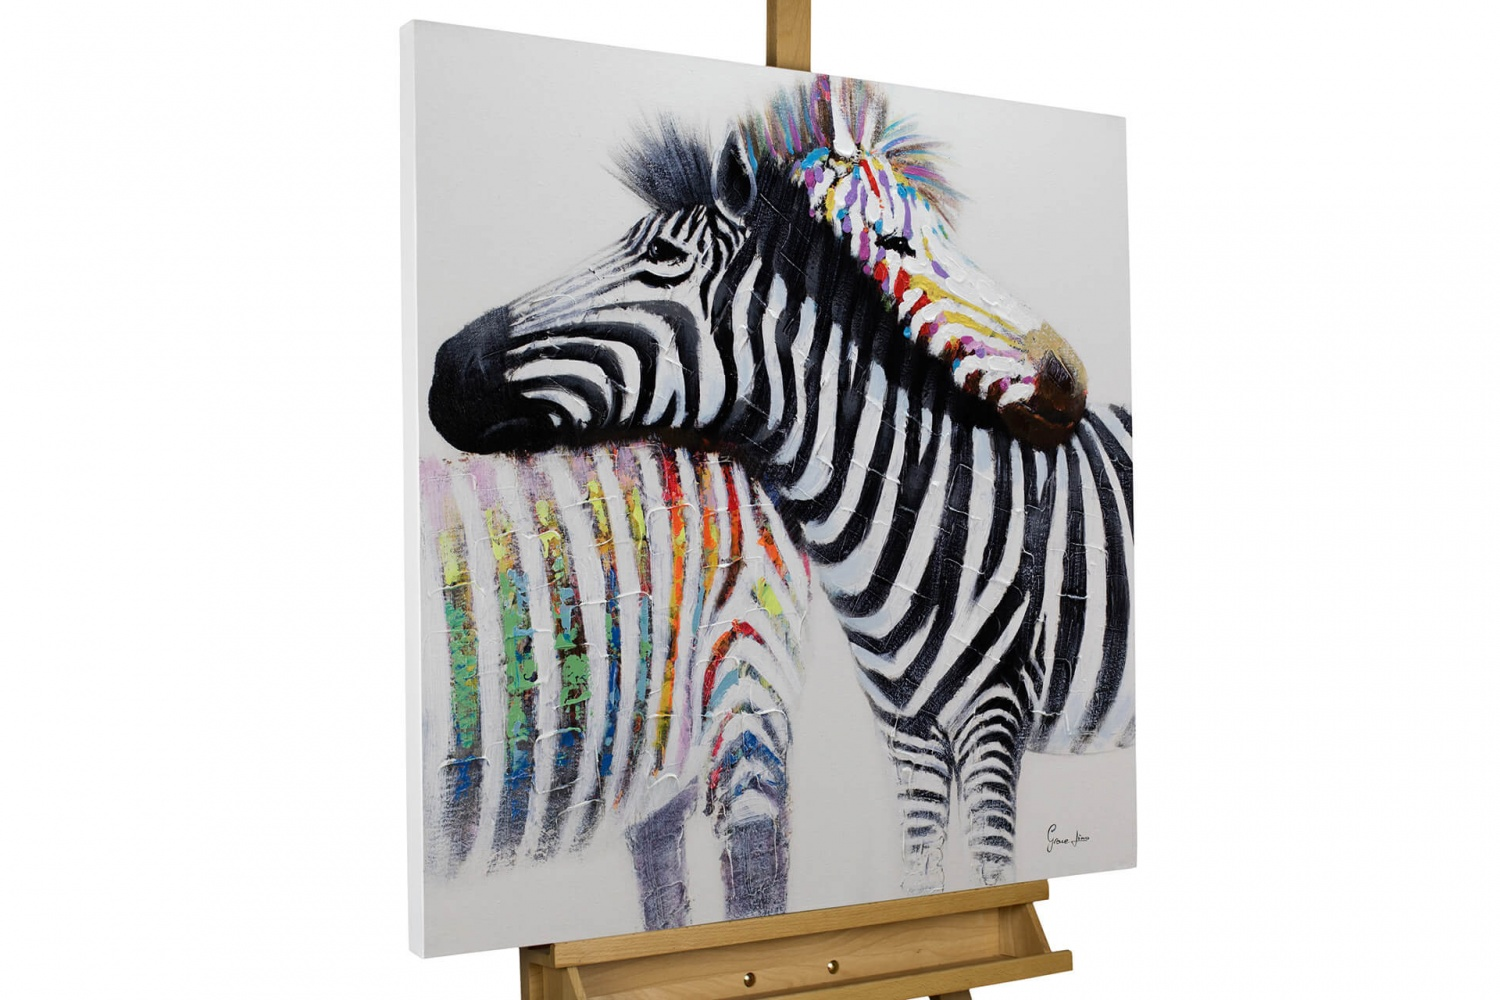 acryl gem lde 39 zebras liebe schwarz 39 handgemalt leinwand bilder 80x80cm ebay. Black Bedroom Furniture Sets. Home Design Ideas